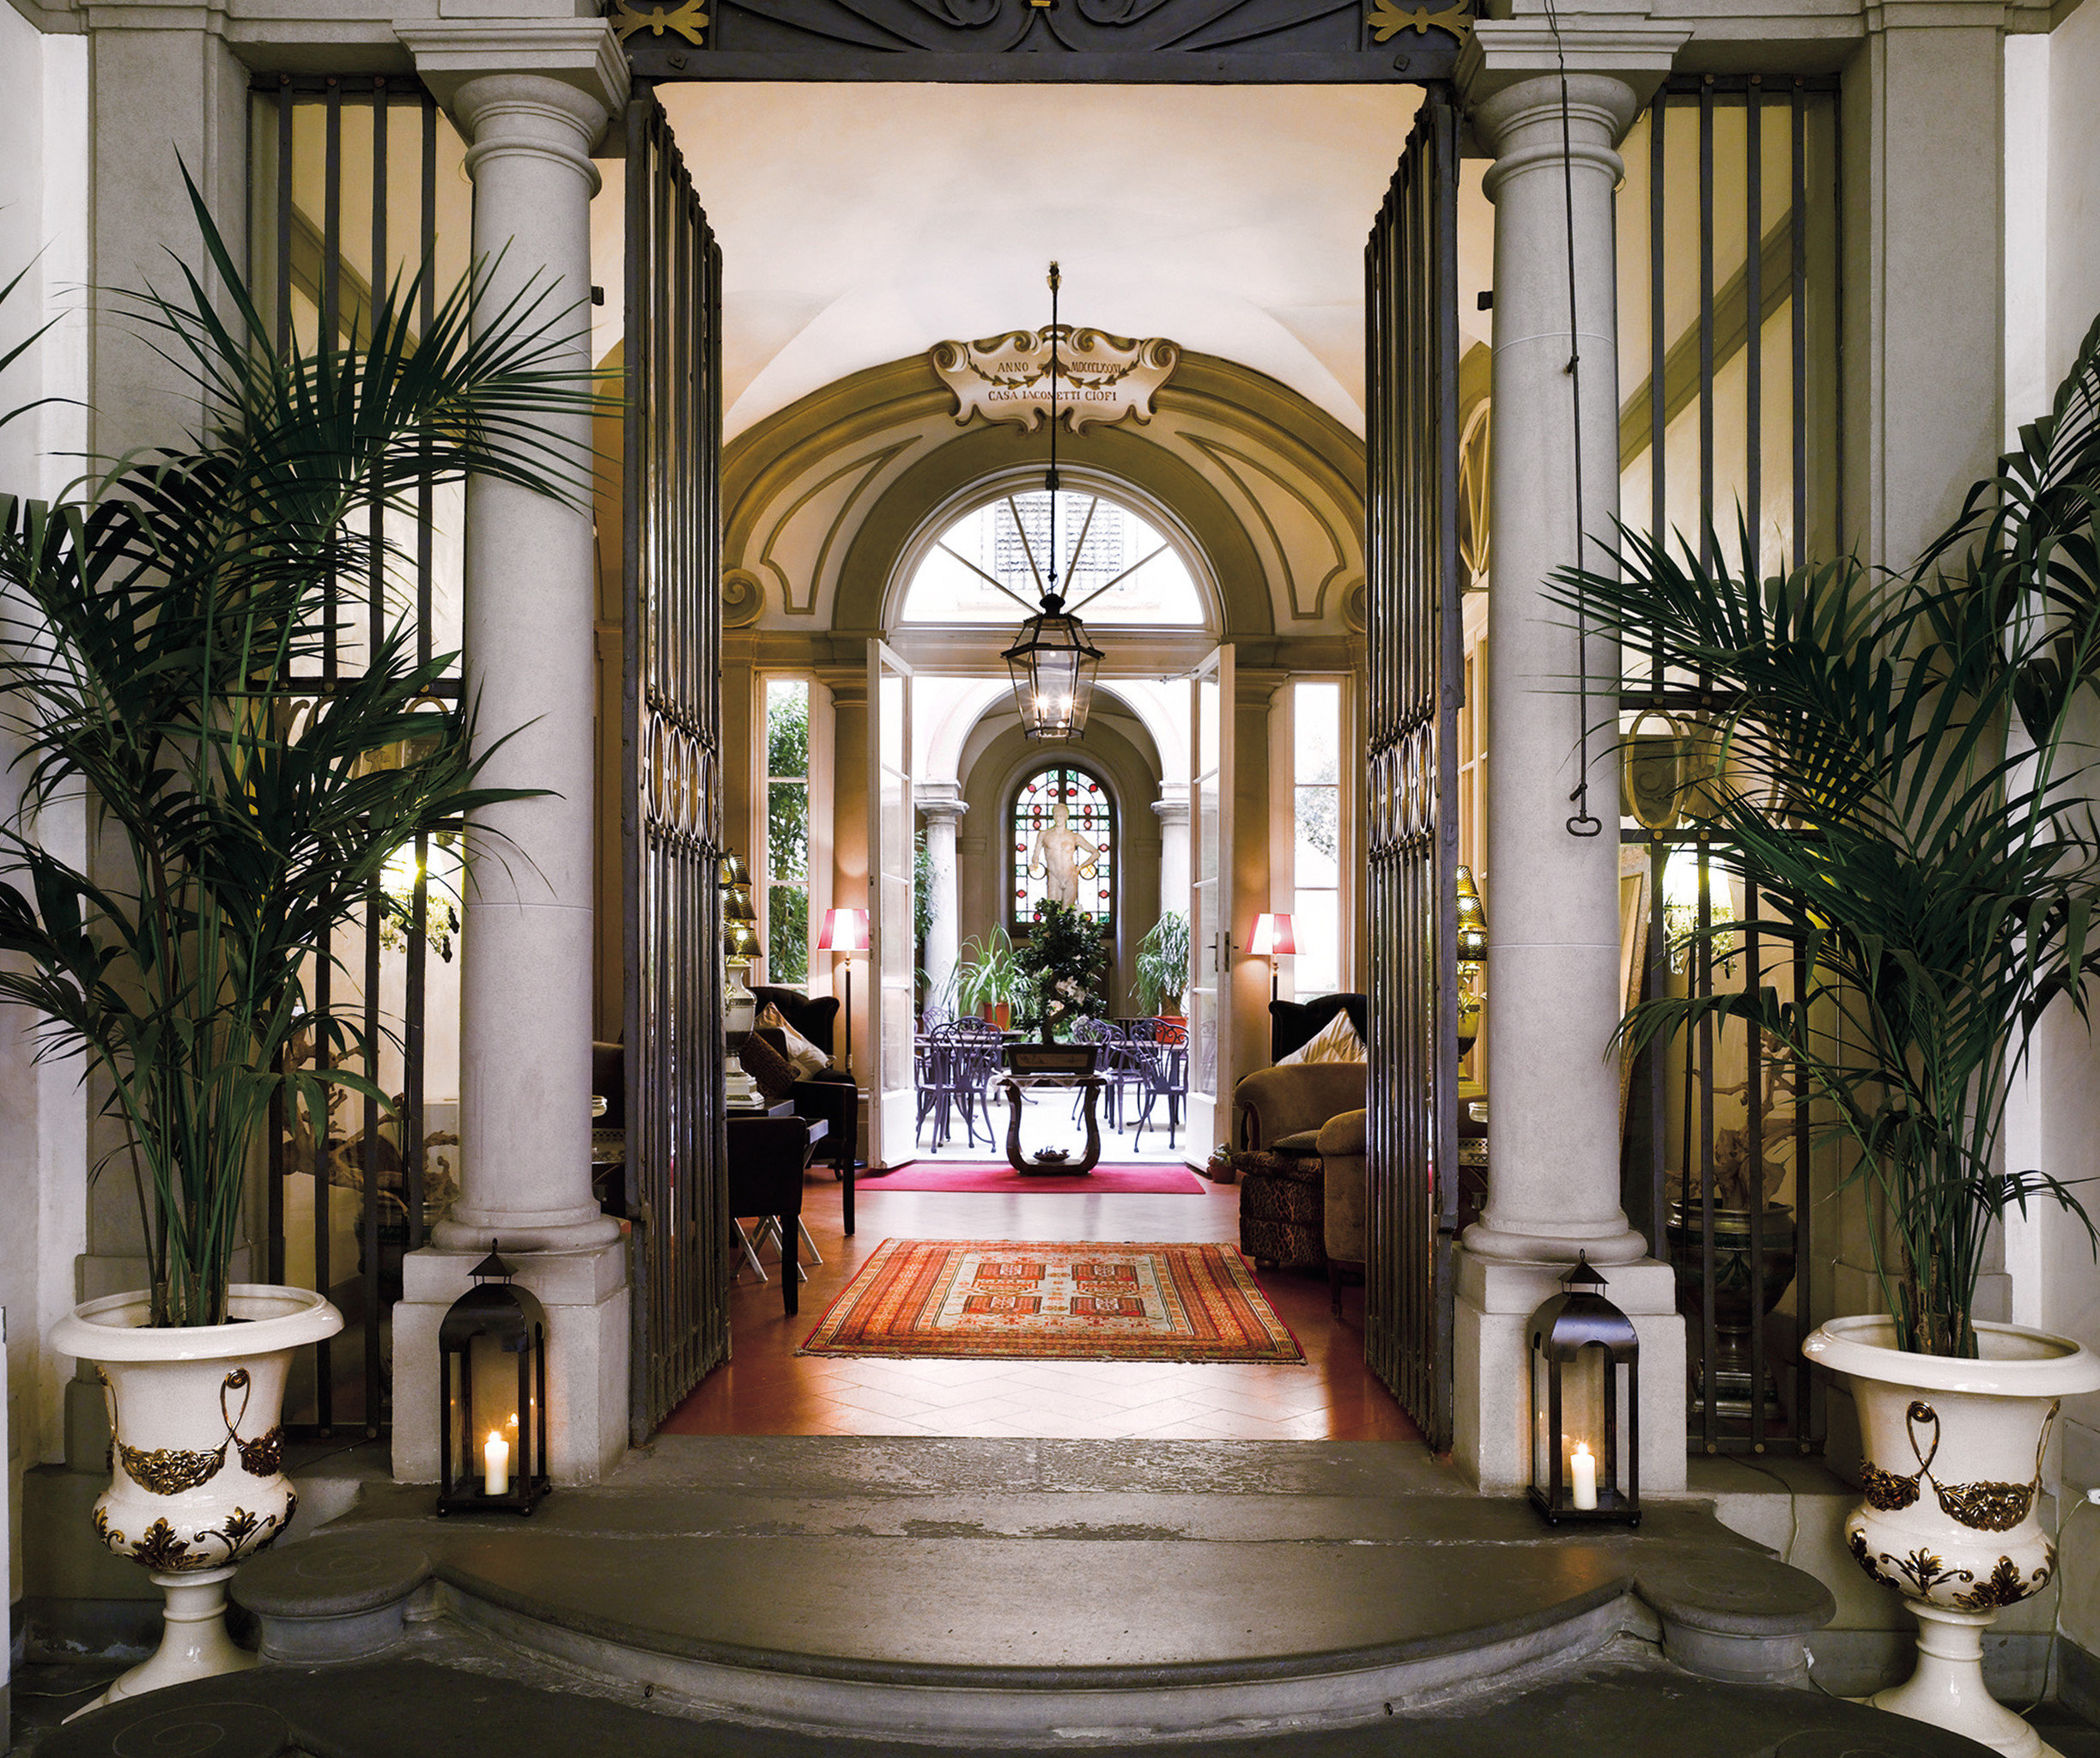 Boutique City Historic Hotels Lobby Luxury indoor building estate Architecture interior design mansion home palace arch Courtyard place of worship tourist attraction decorated altar colonnade